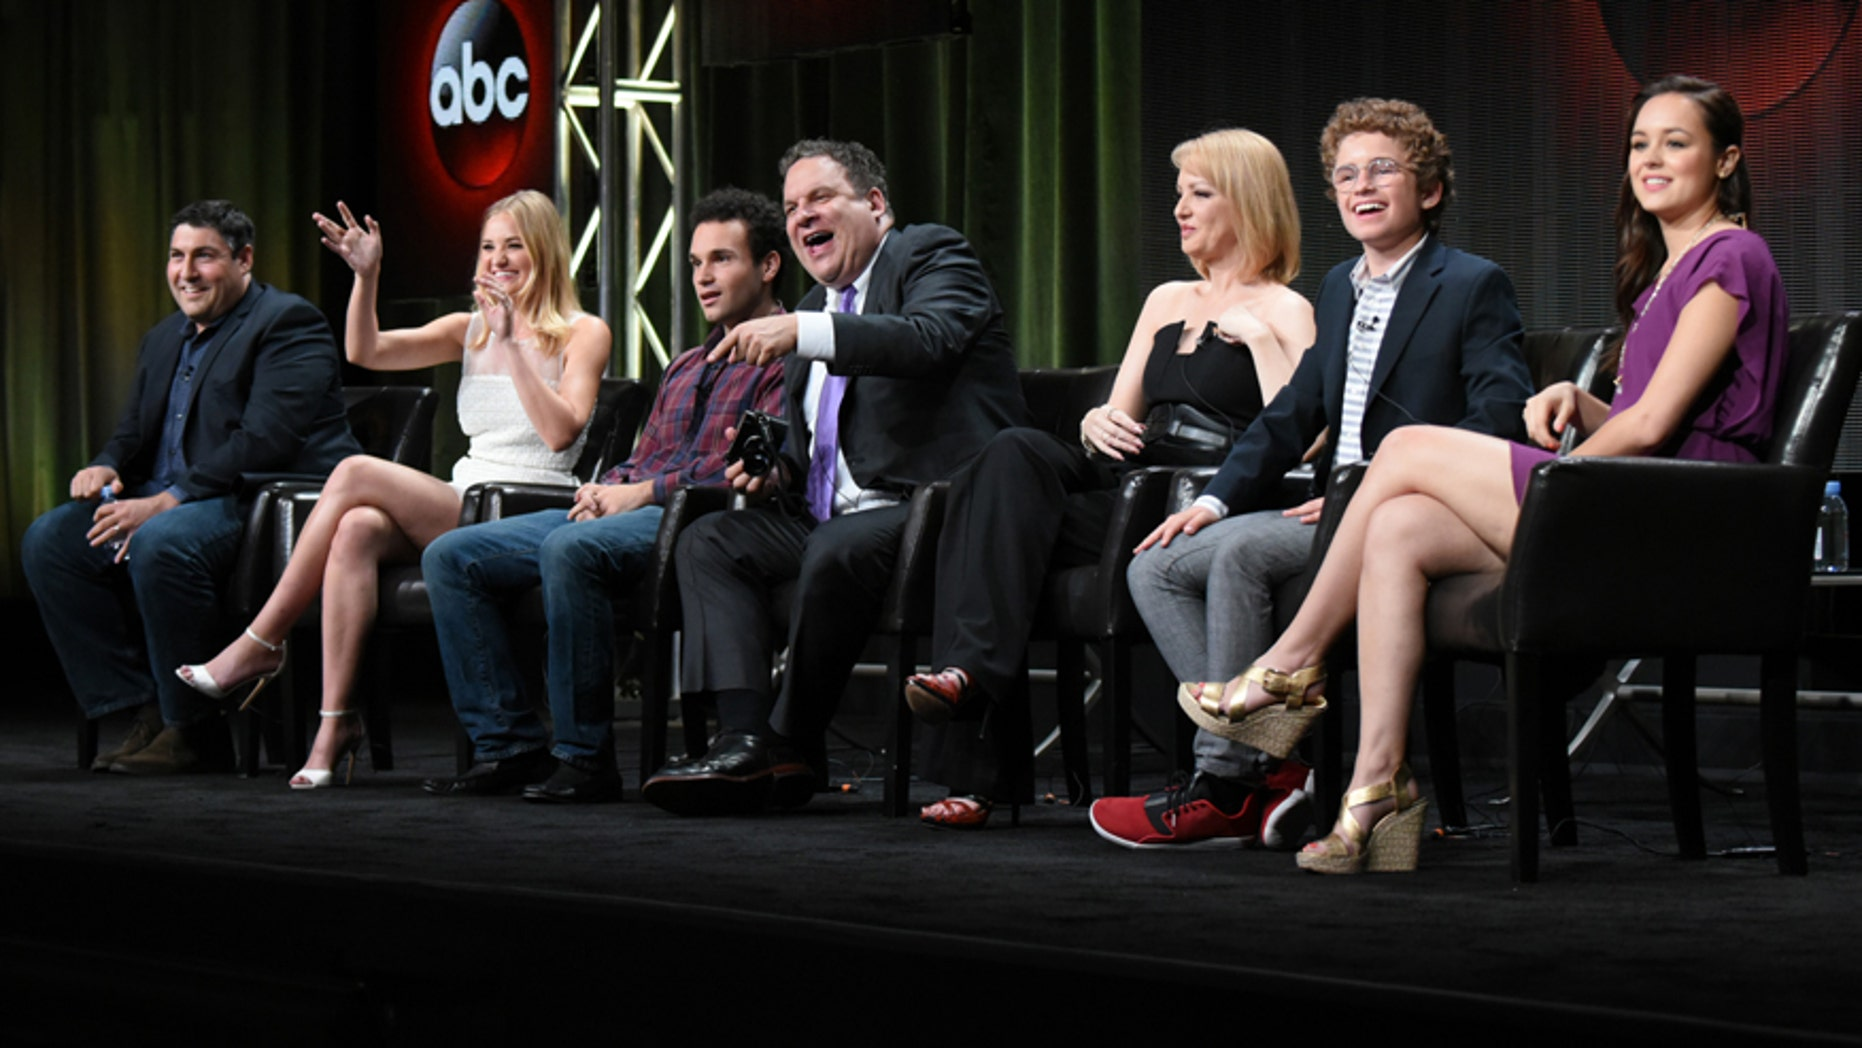 """Creator/Executive Producer Adam Goldberg, from left, AJ Michalka, Troy Gentile, Jeff Garlin, Wendi McLendon-Covey, Sean Giambrone and Hayley Orrantia participate in """"The Goldbergs"""" panel at the Disney/ABC Summer TCA Tour at the Beverly Hilton Hotel on Tuesday, Aug. 4, 2015, in Beverly Hills, Calif."""